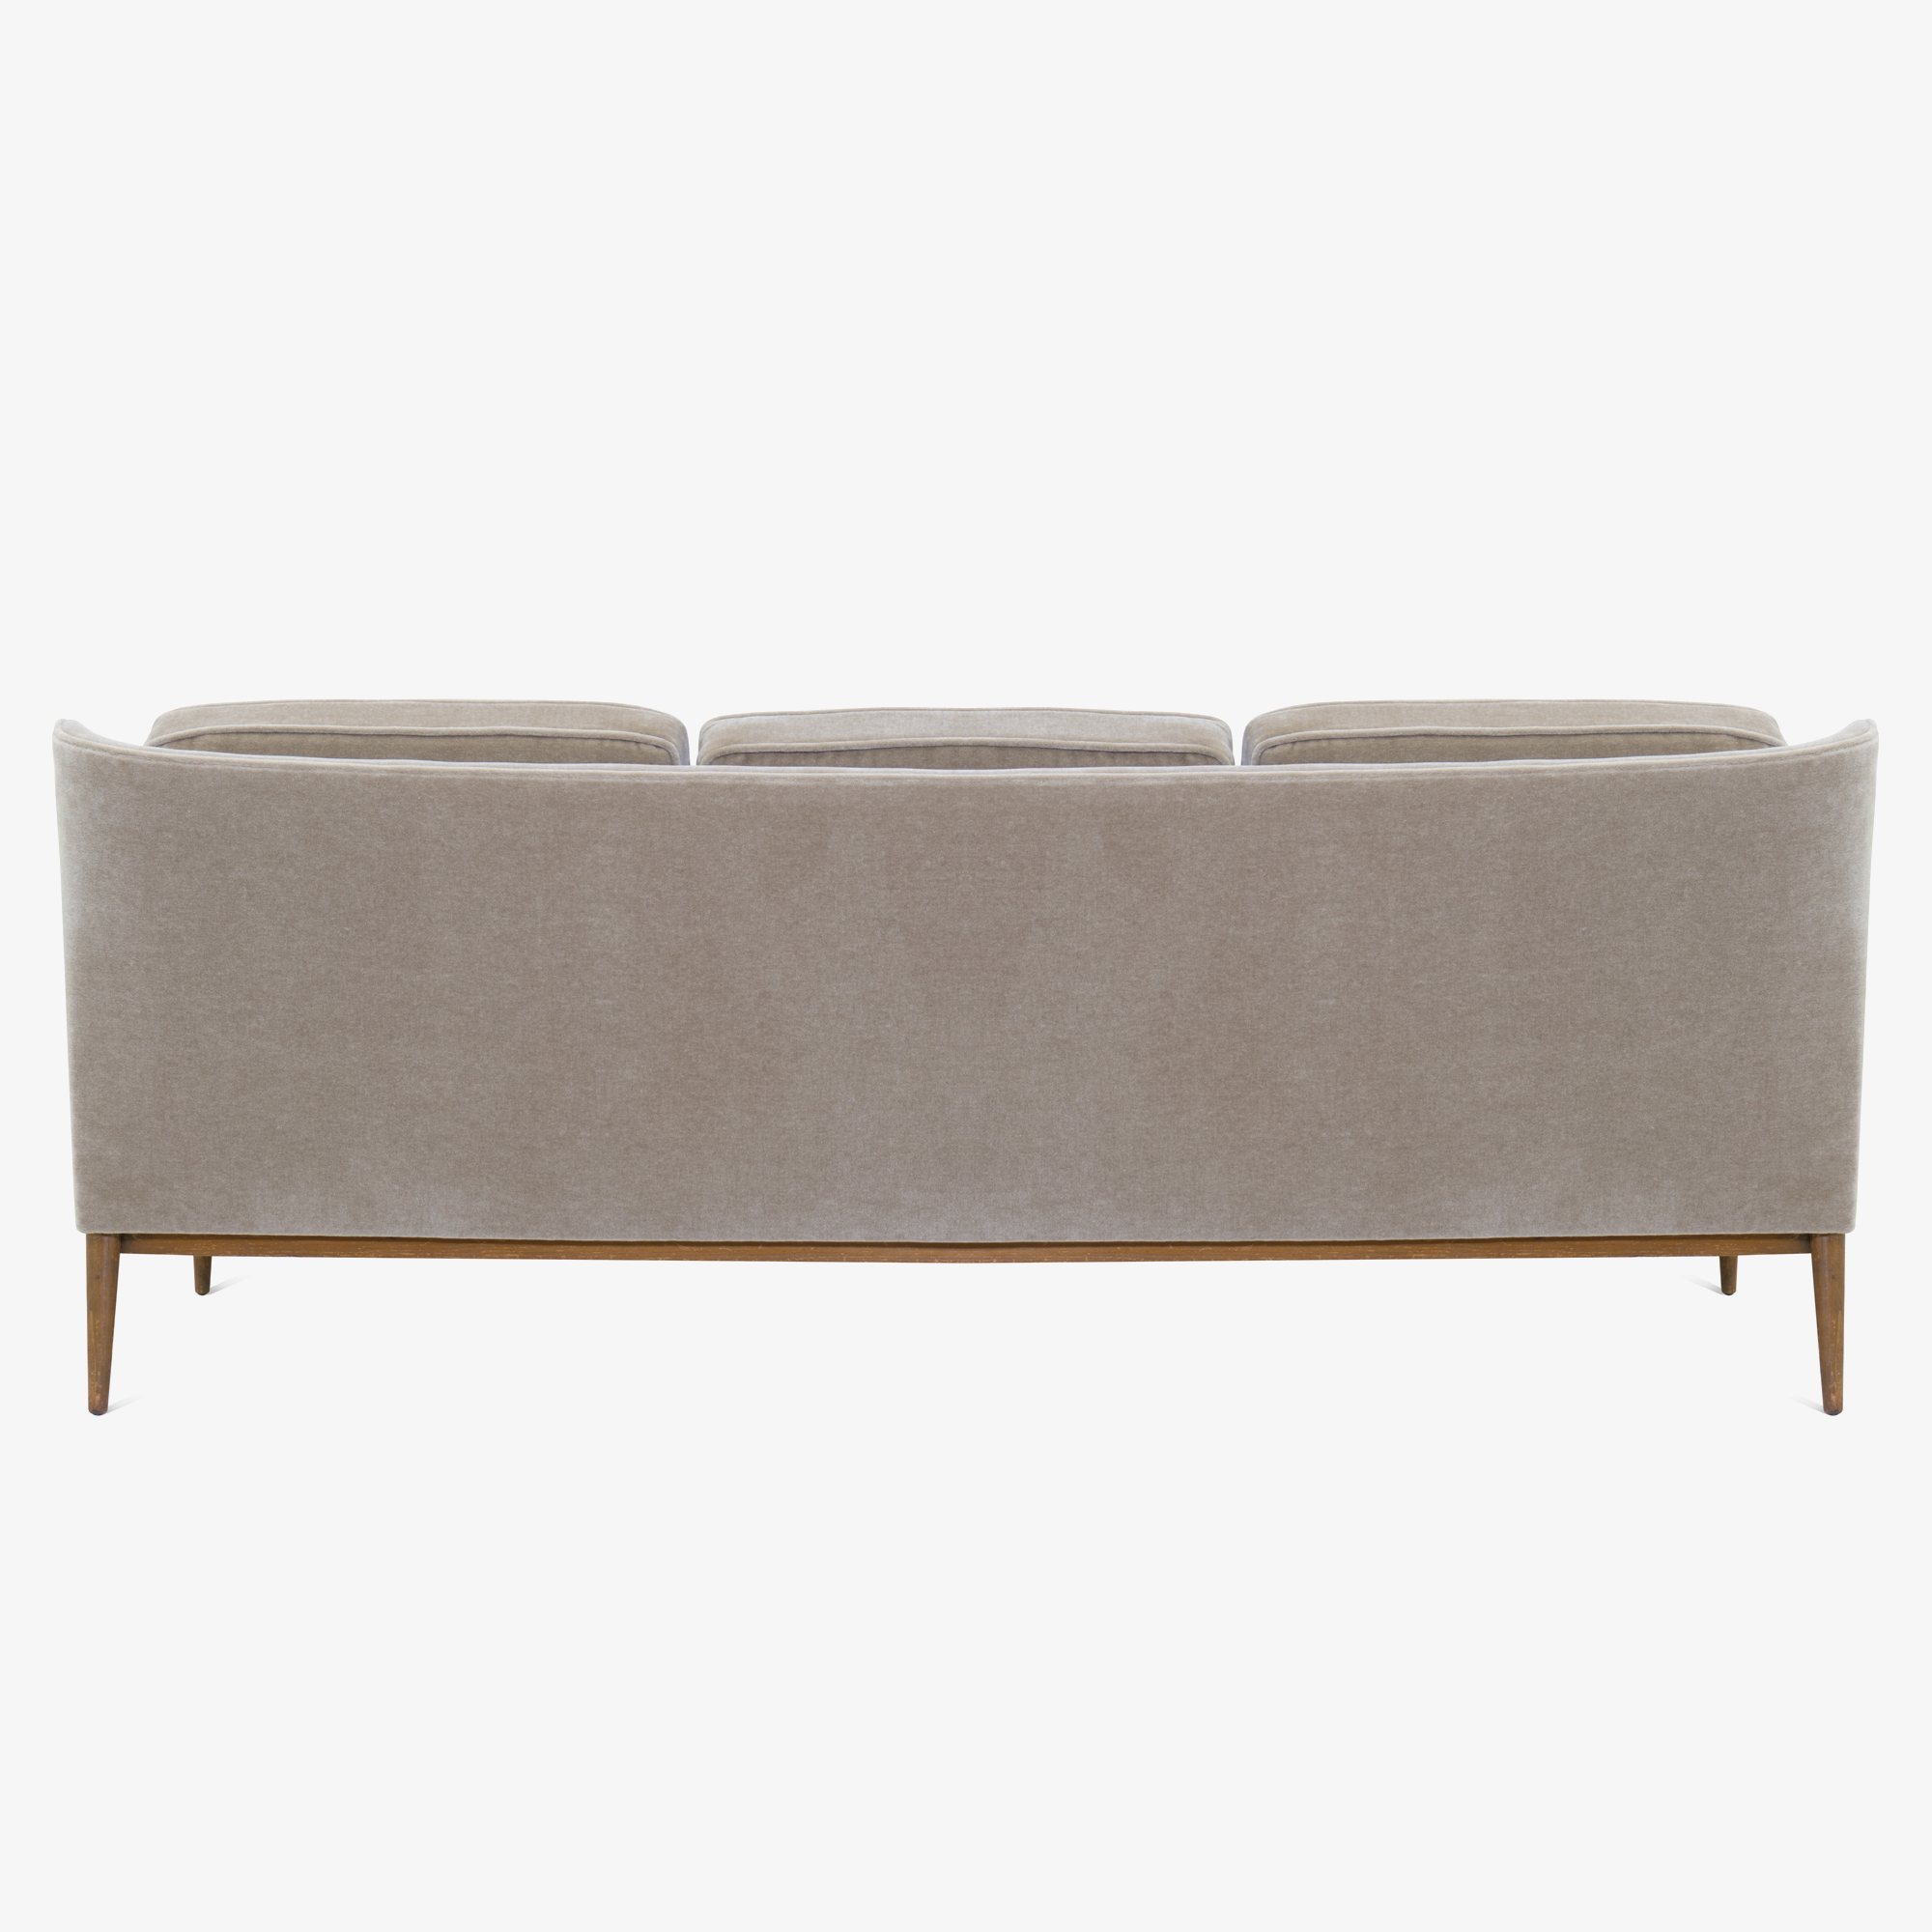 3-Seat %22Model 1307%22 Sofa in Mohair by Paul McCobb for Directional3.png